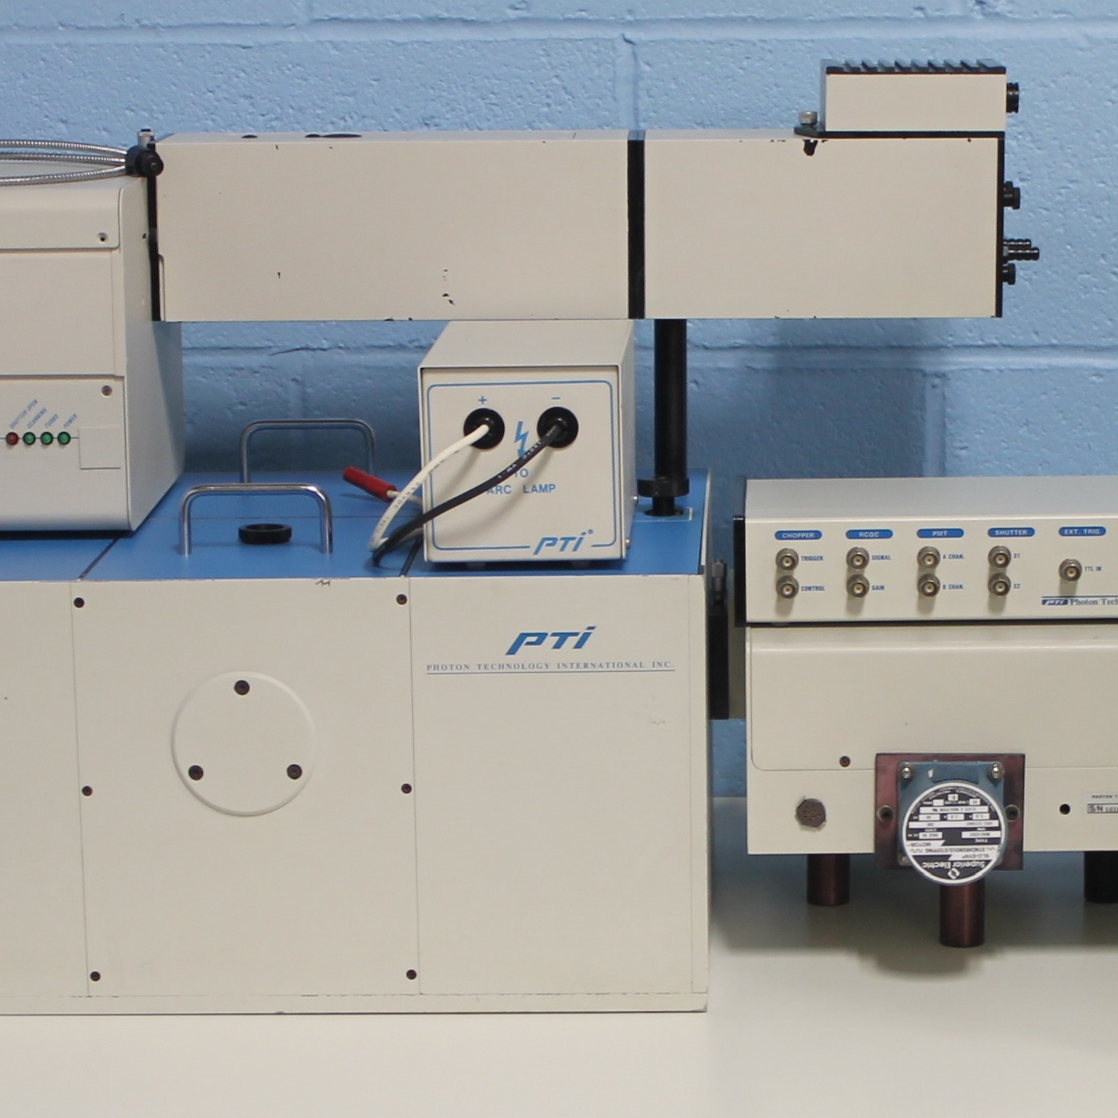 Photon Technology International PTI QuantaMaster Fluorescence/Luminescence Spectrometer Image